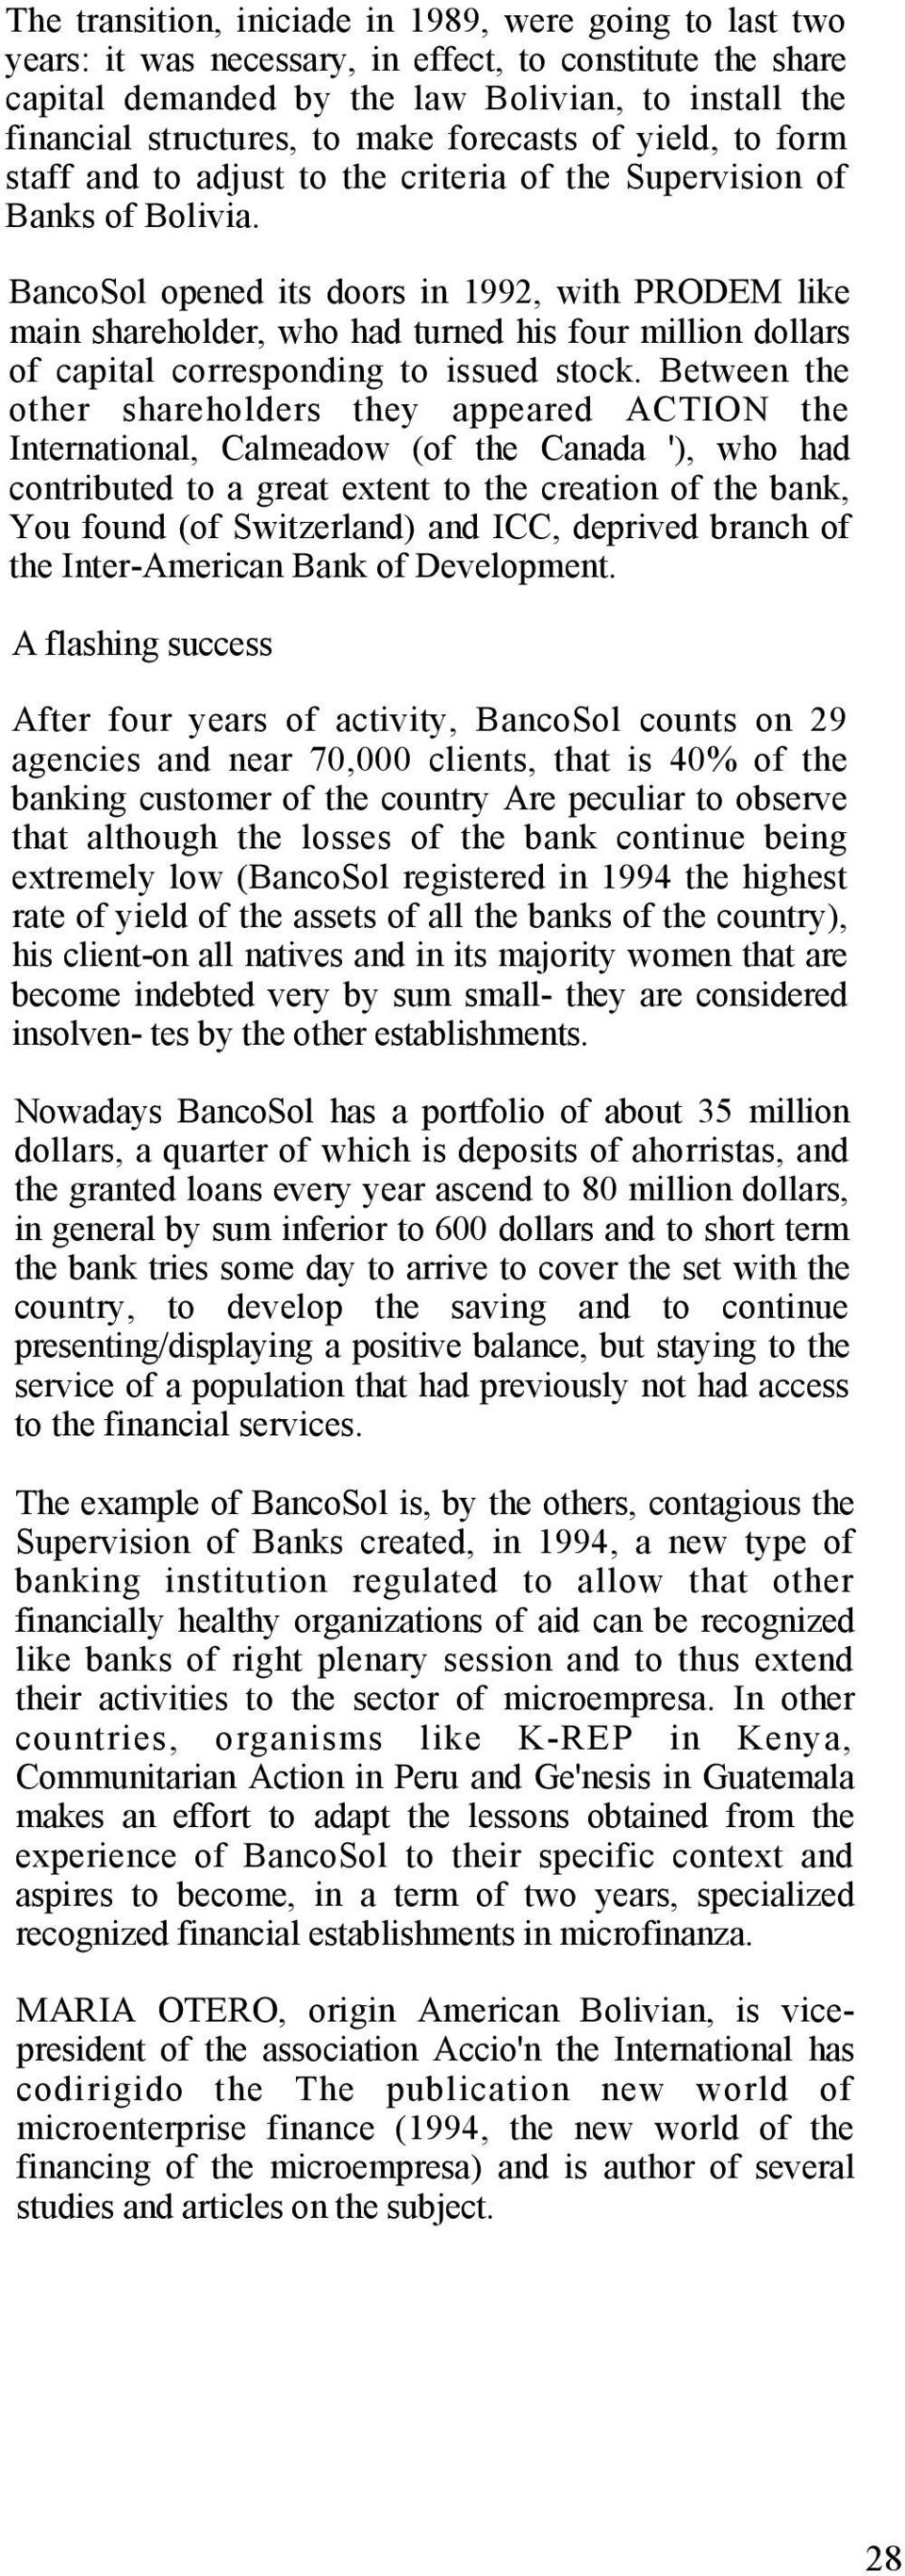 BancoSol opened its doors in 1992, with PRODEM like main shareholder, who had turned his four million dollars of capital corresponding to issued stock.